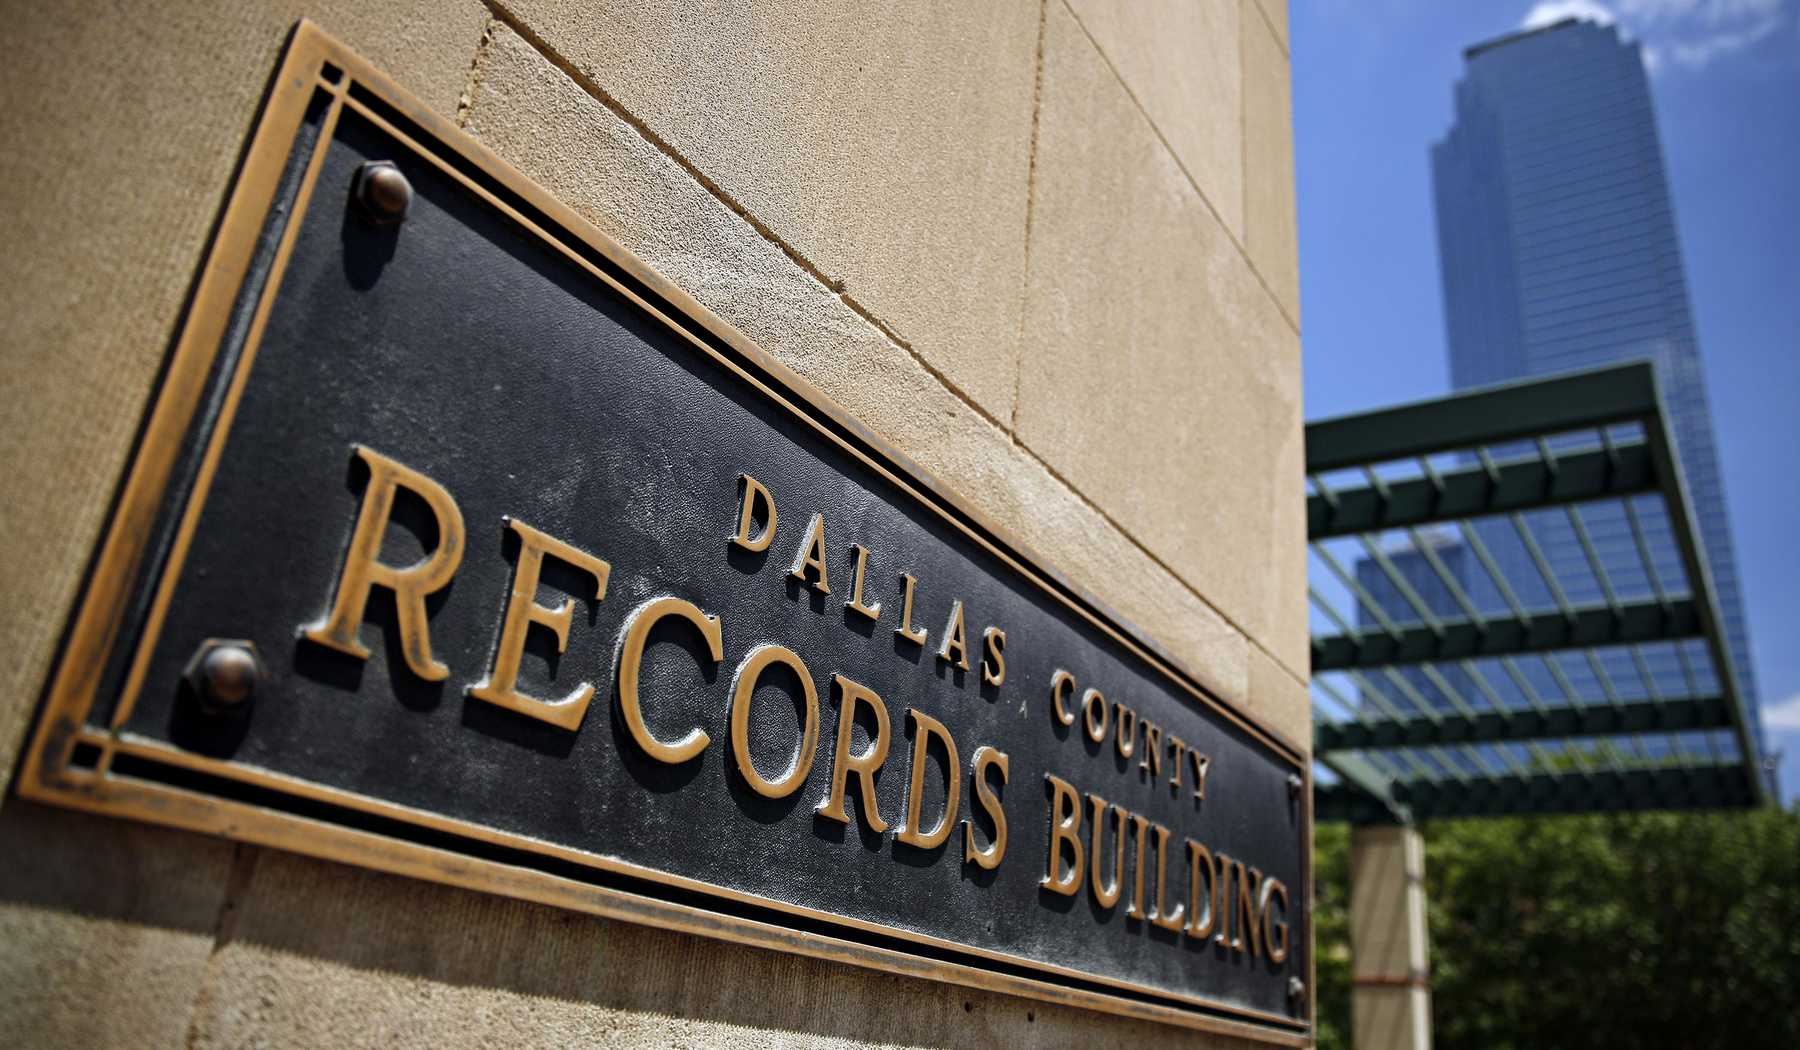 The Dallas County Records Complex, Where Jack Ruby Was Once Jailed - Map Records Dallas County Texas